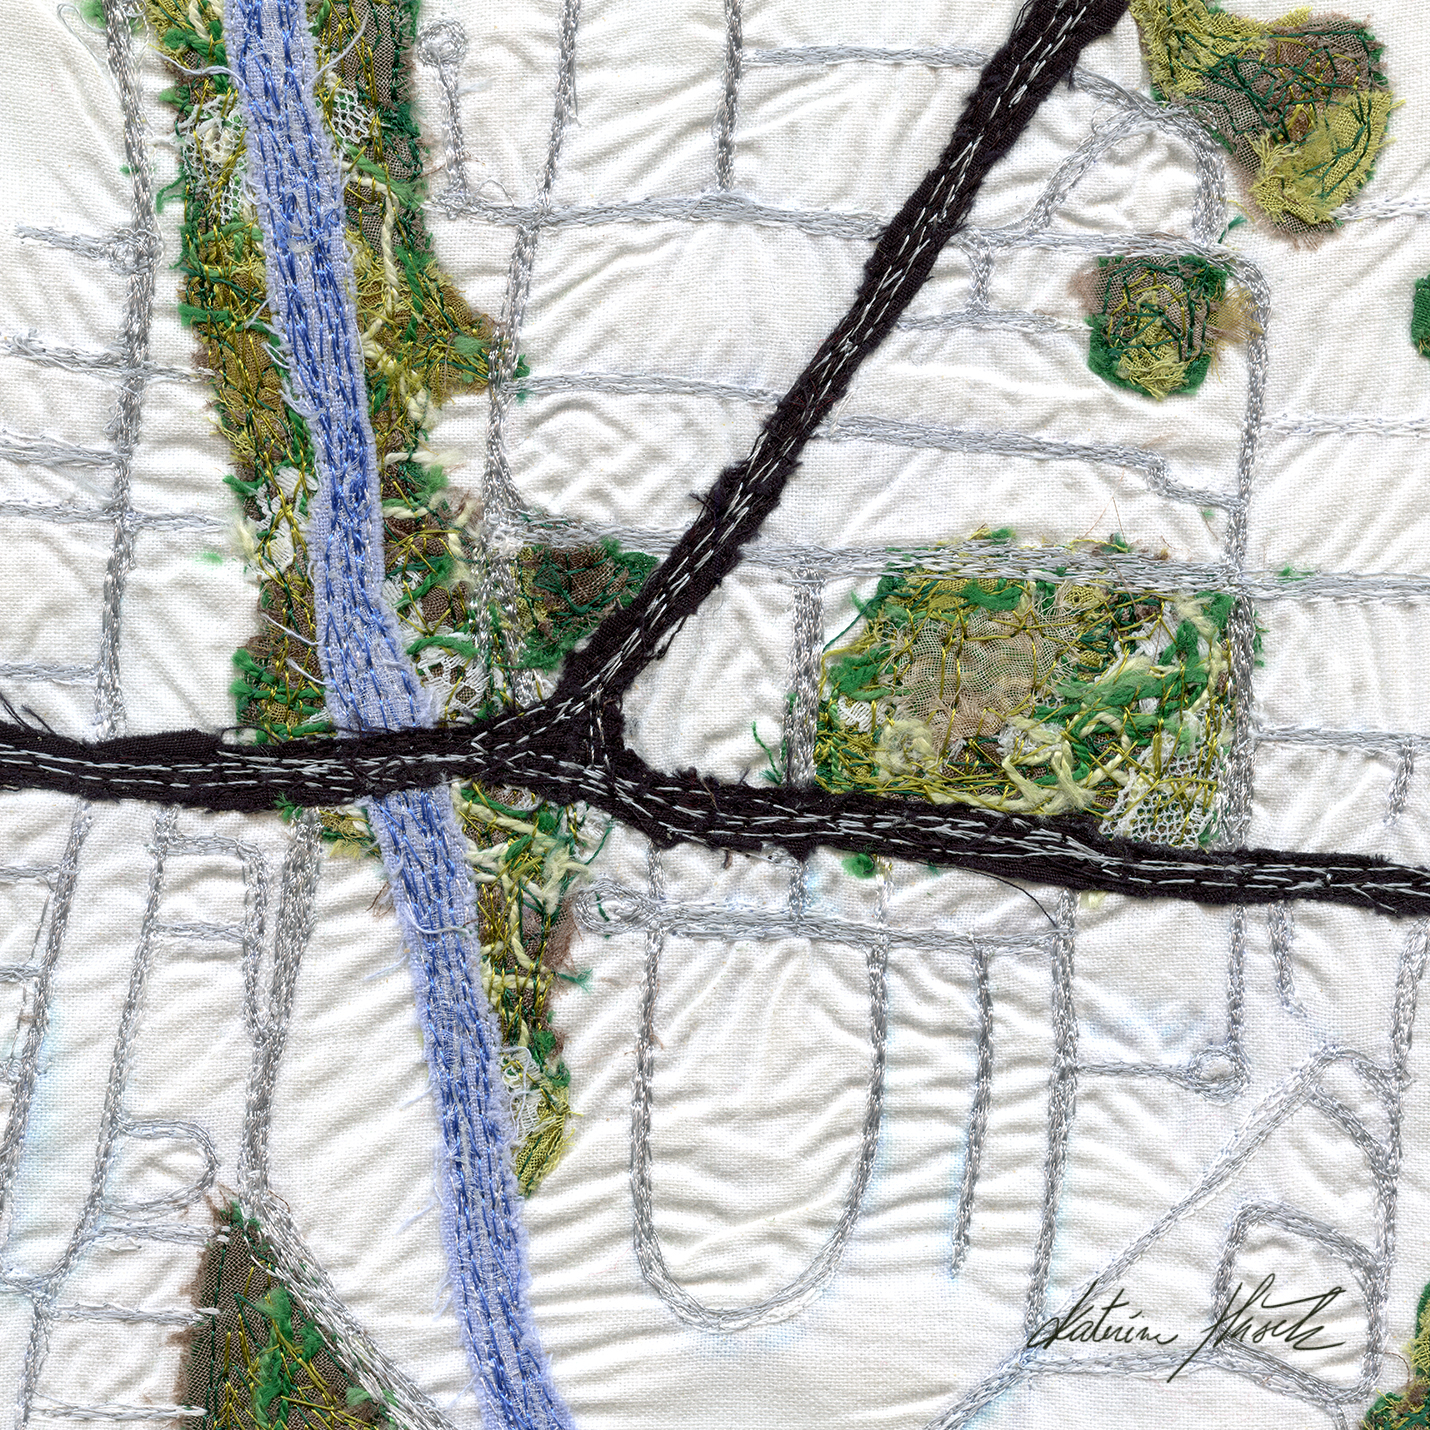 A textile artwork titled Crossing The Yarra by Katerina Hasek.